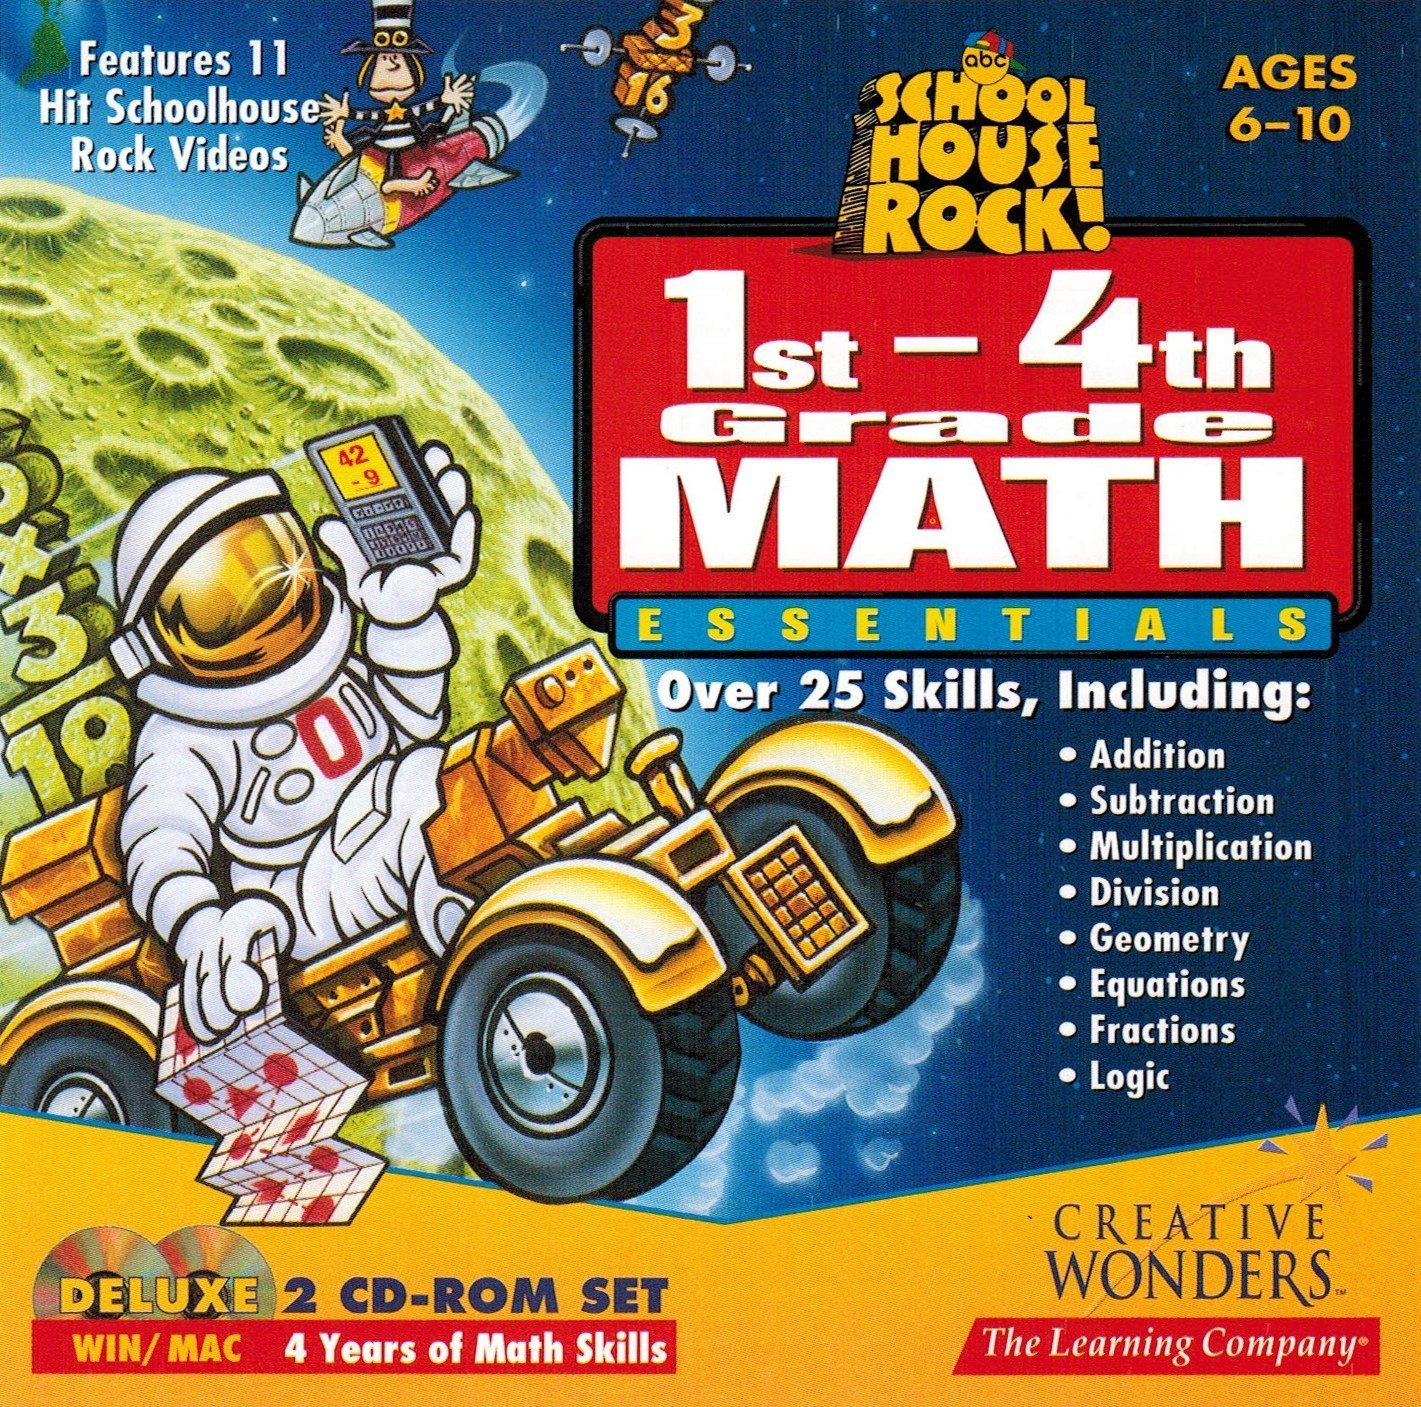 SCHOOL HOUSE ROCK! 1st-4th Grade Math Essentials (WINDOWS/MAC) by Learning Company